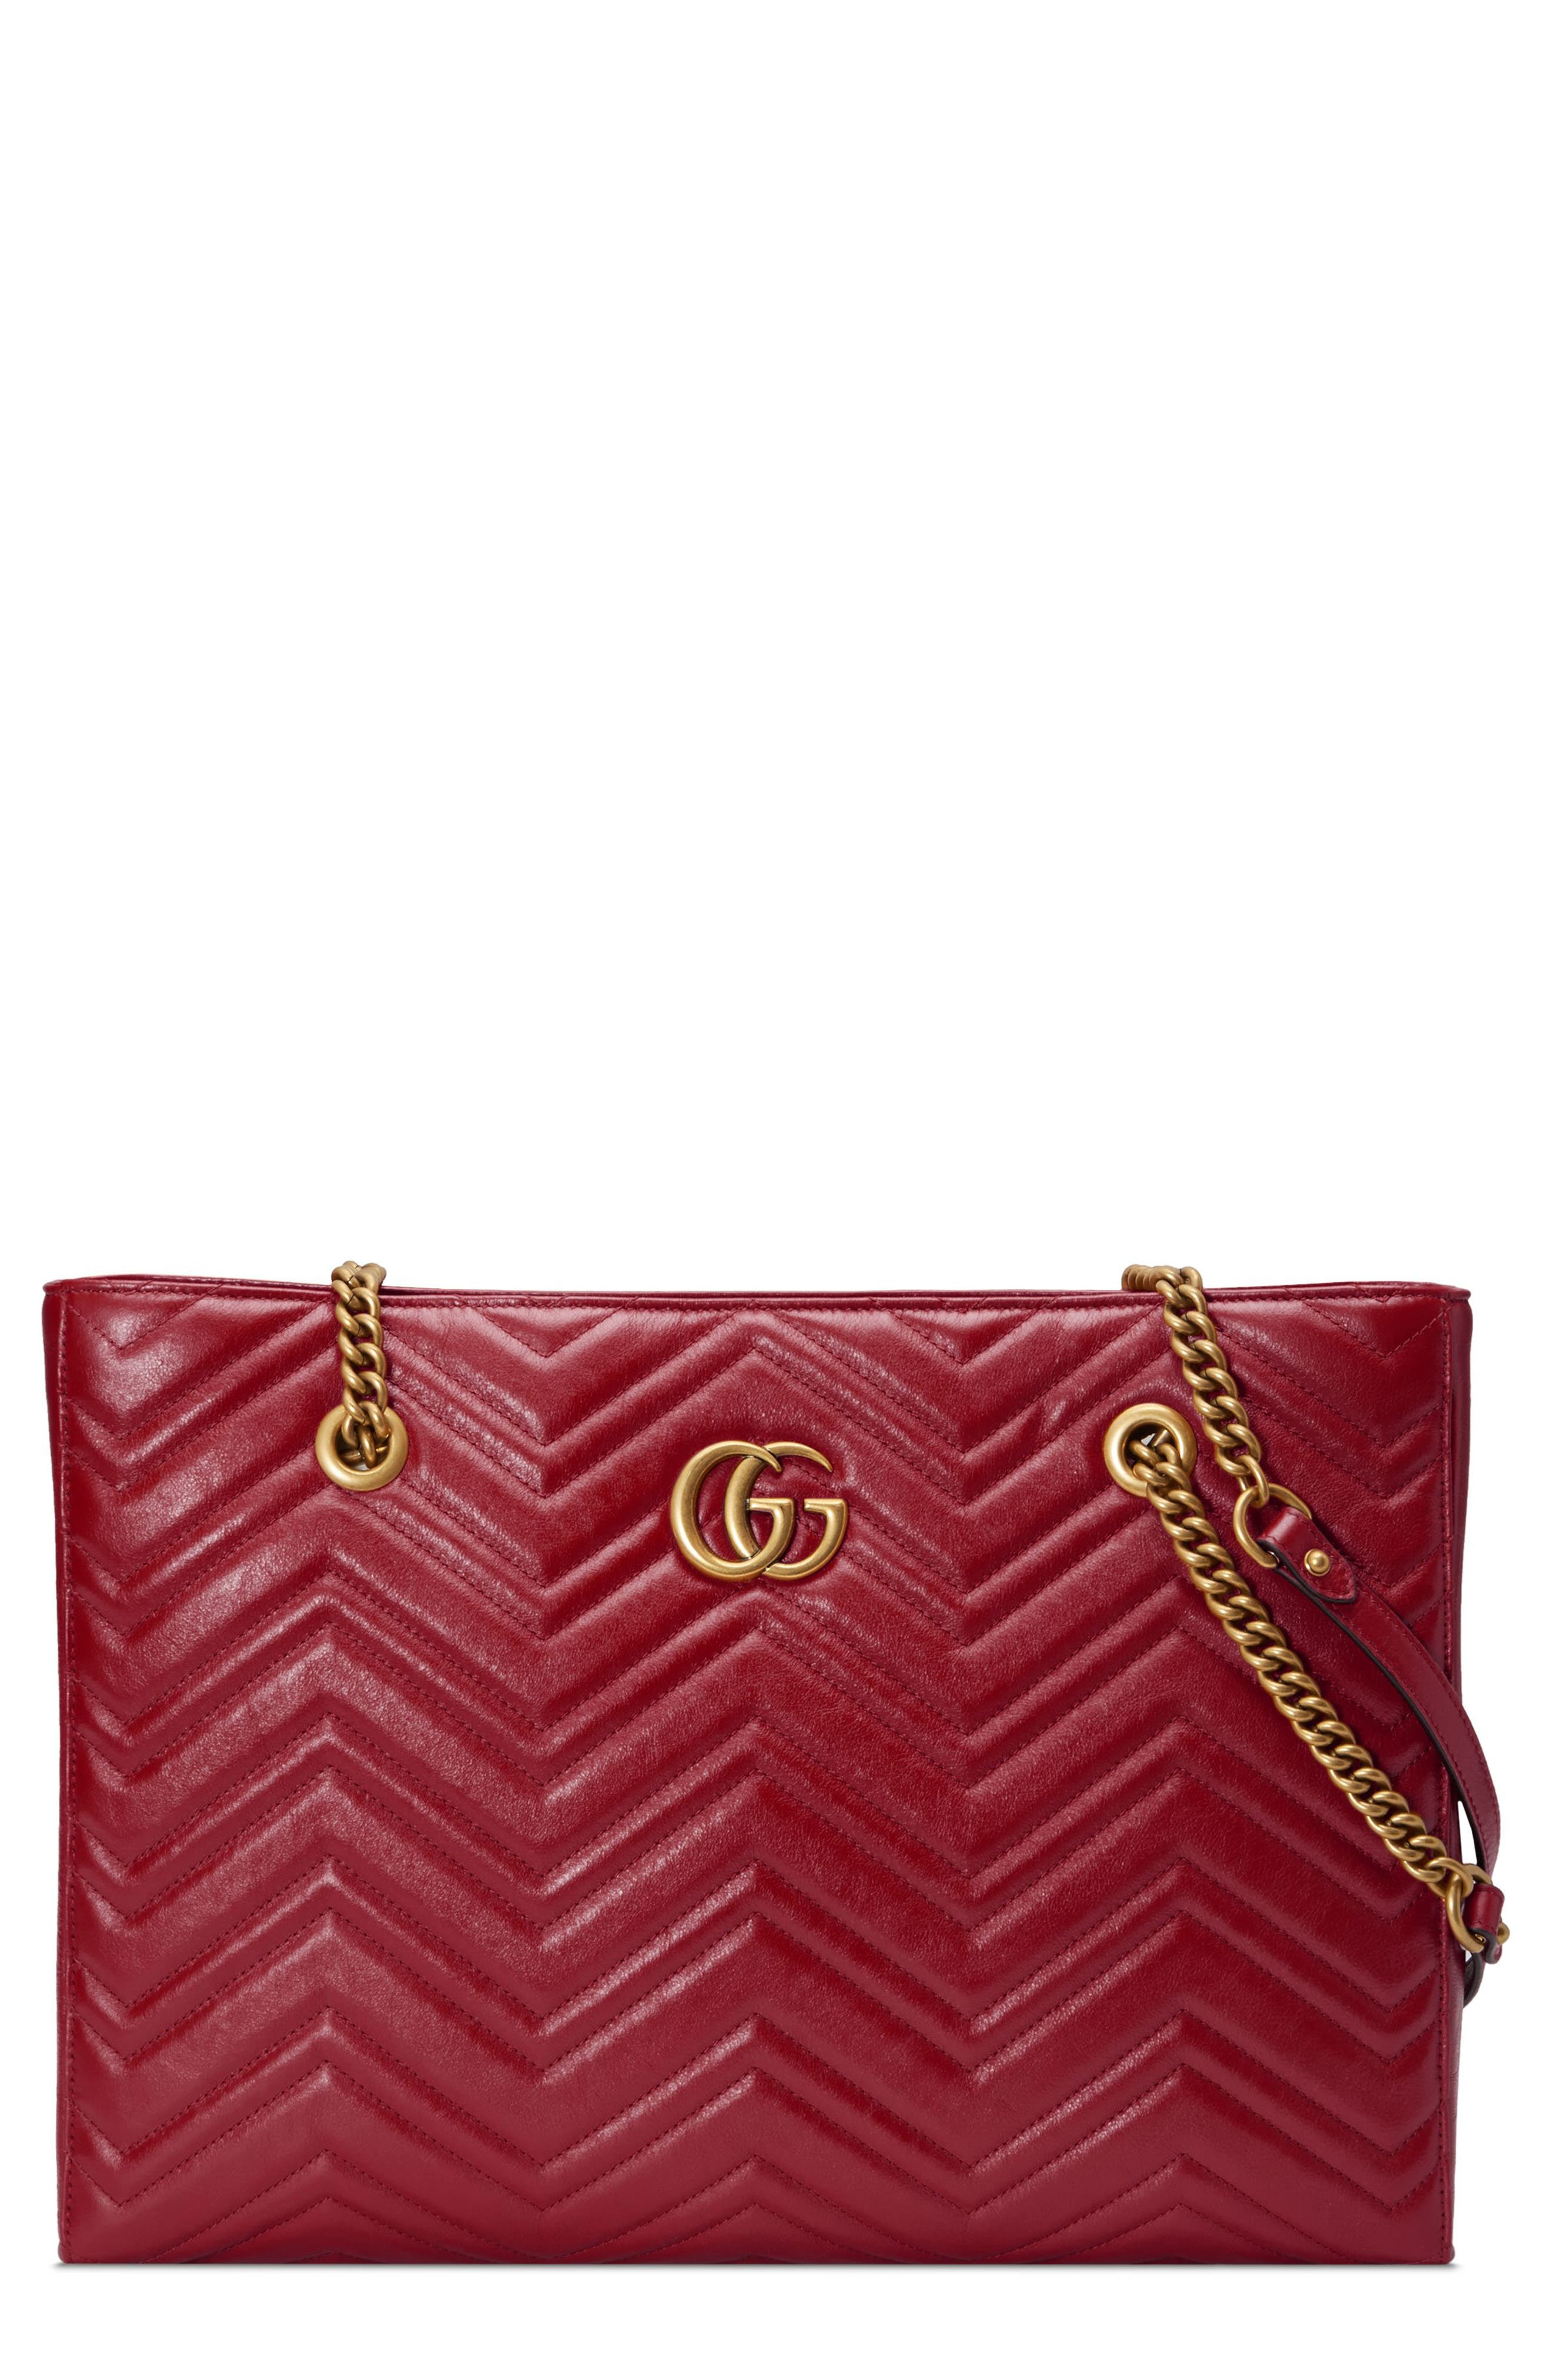 GG Marmont 2.0 Matelassé Medium Leather East/West Tote Bag,                             Main thumbnail 1, color,                             CERISE/ CERISE